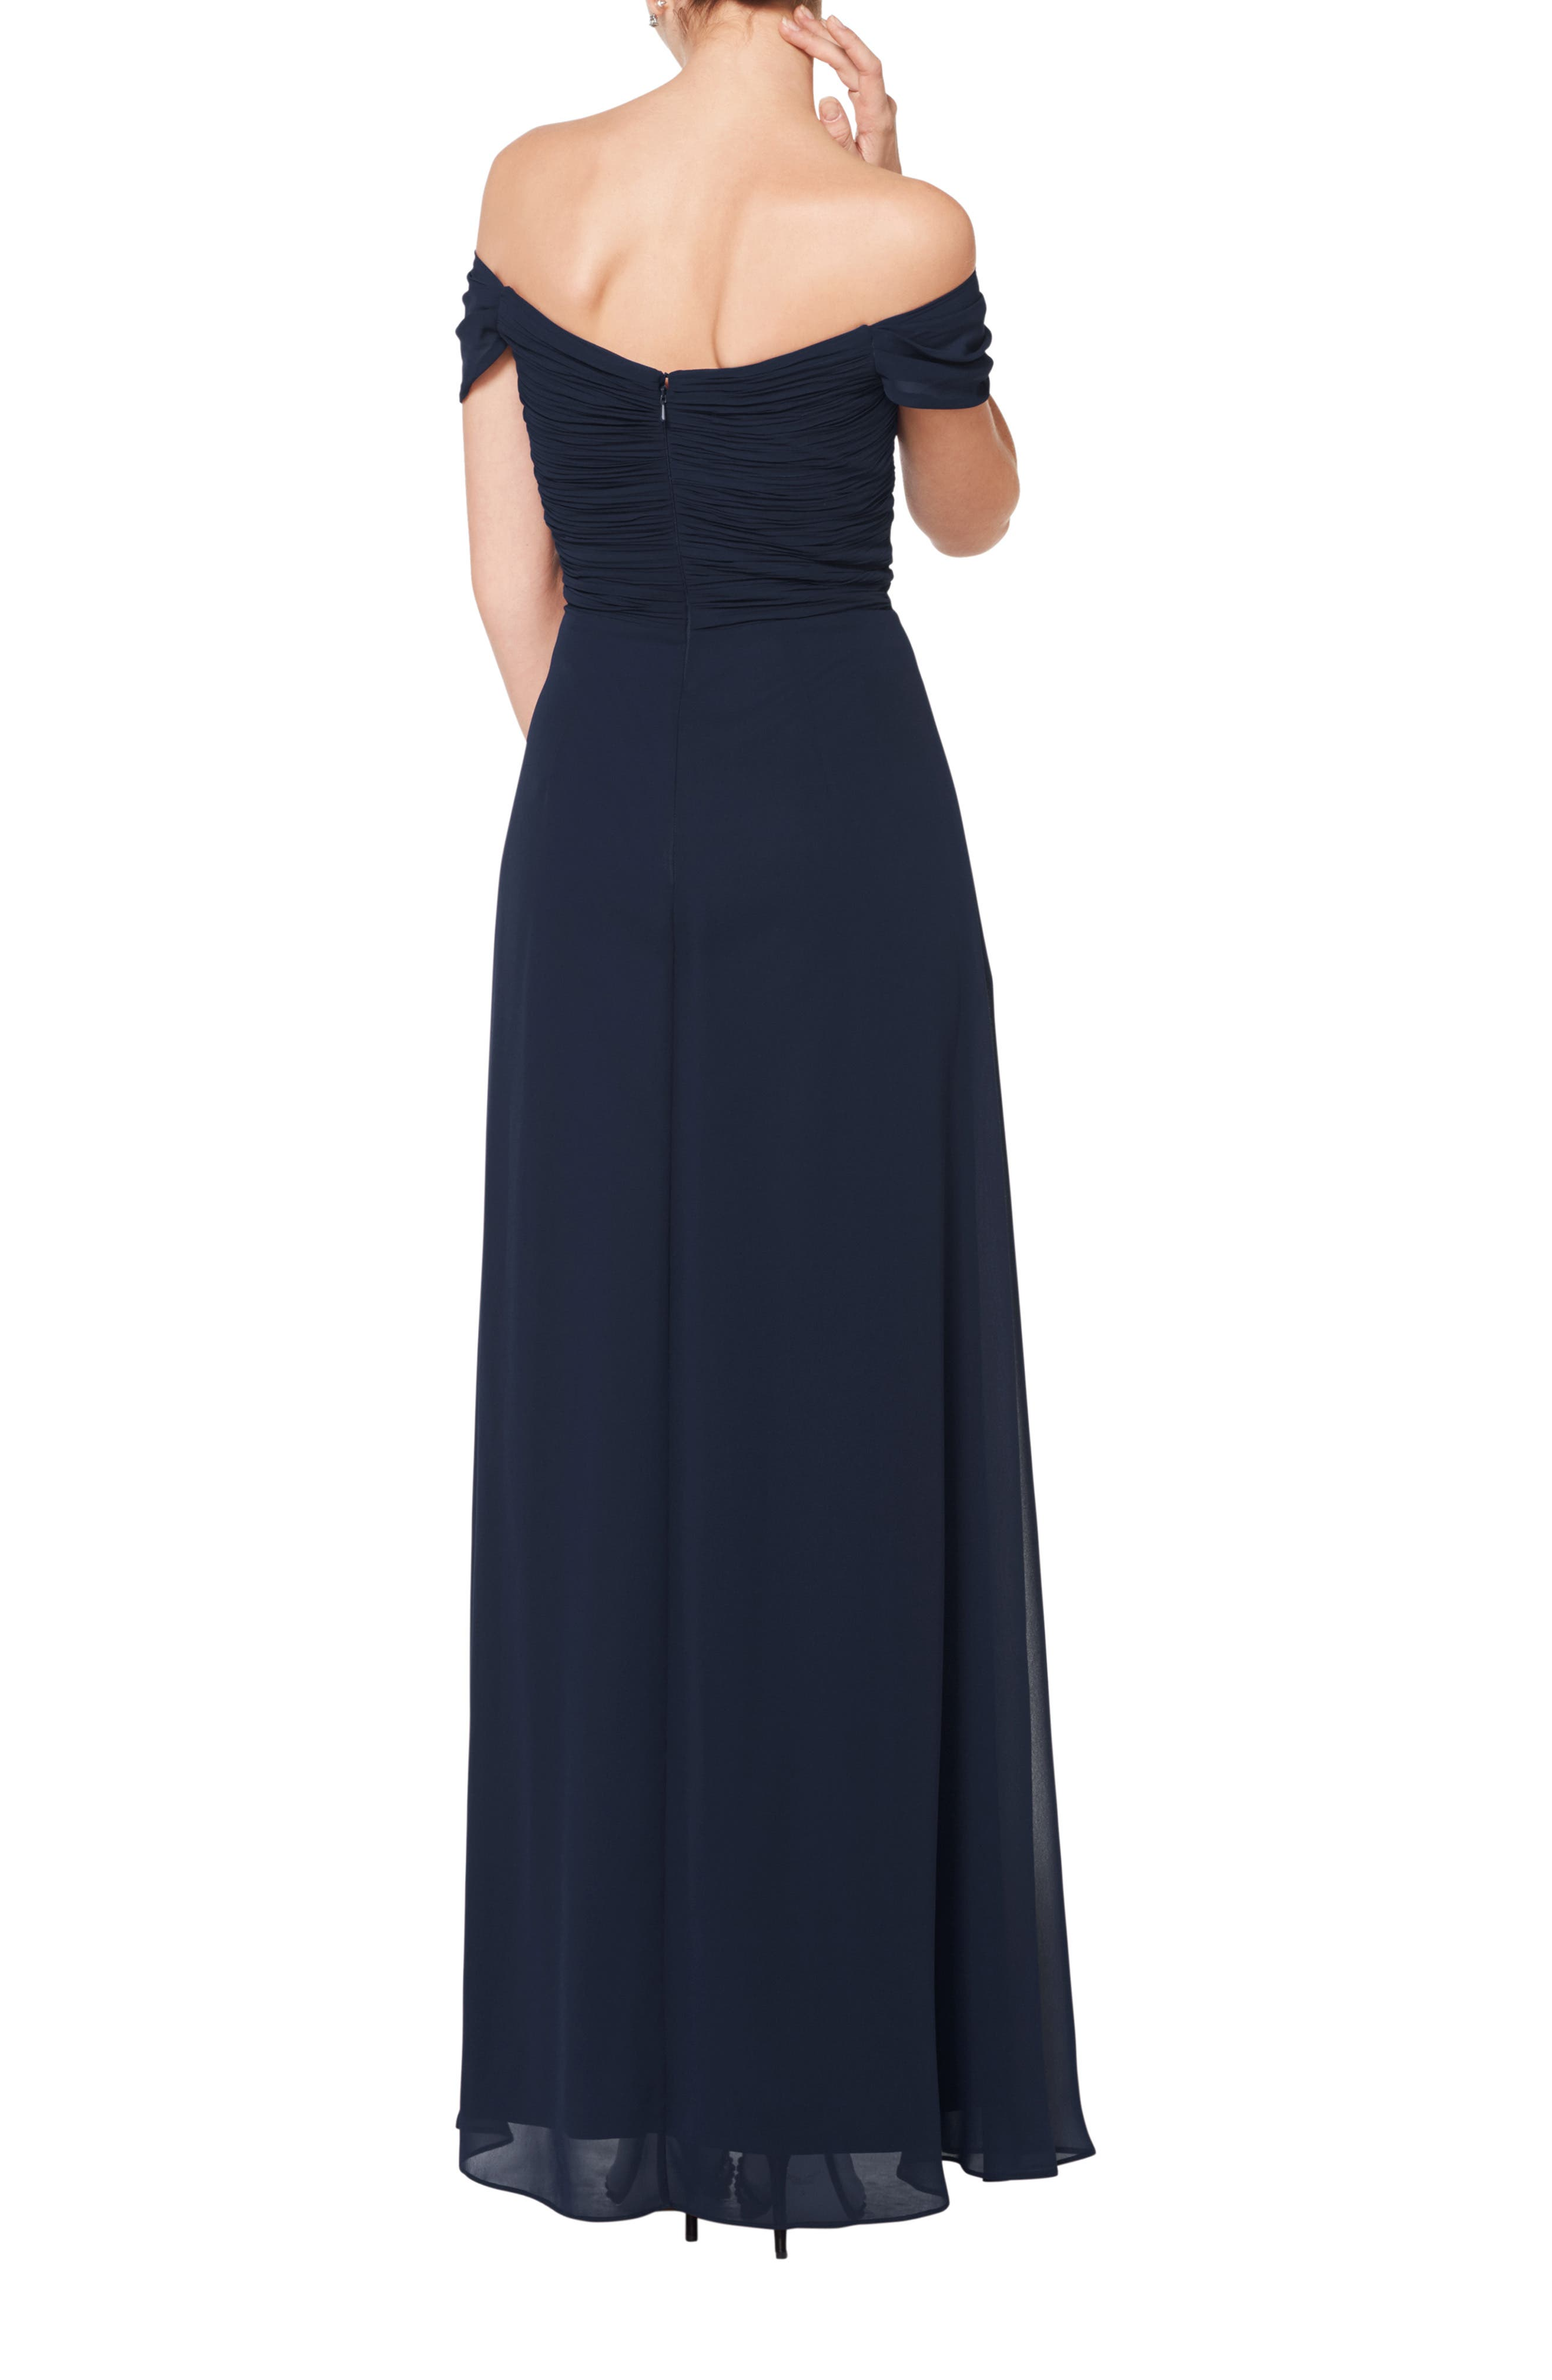 #LEVKOFF, Off the Shoulder Ruched Bodice Chiffon Evening Dress, Alternate thumbnail 2, color, NAVY